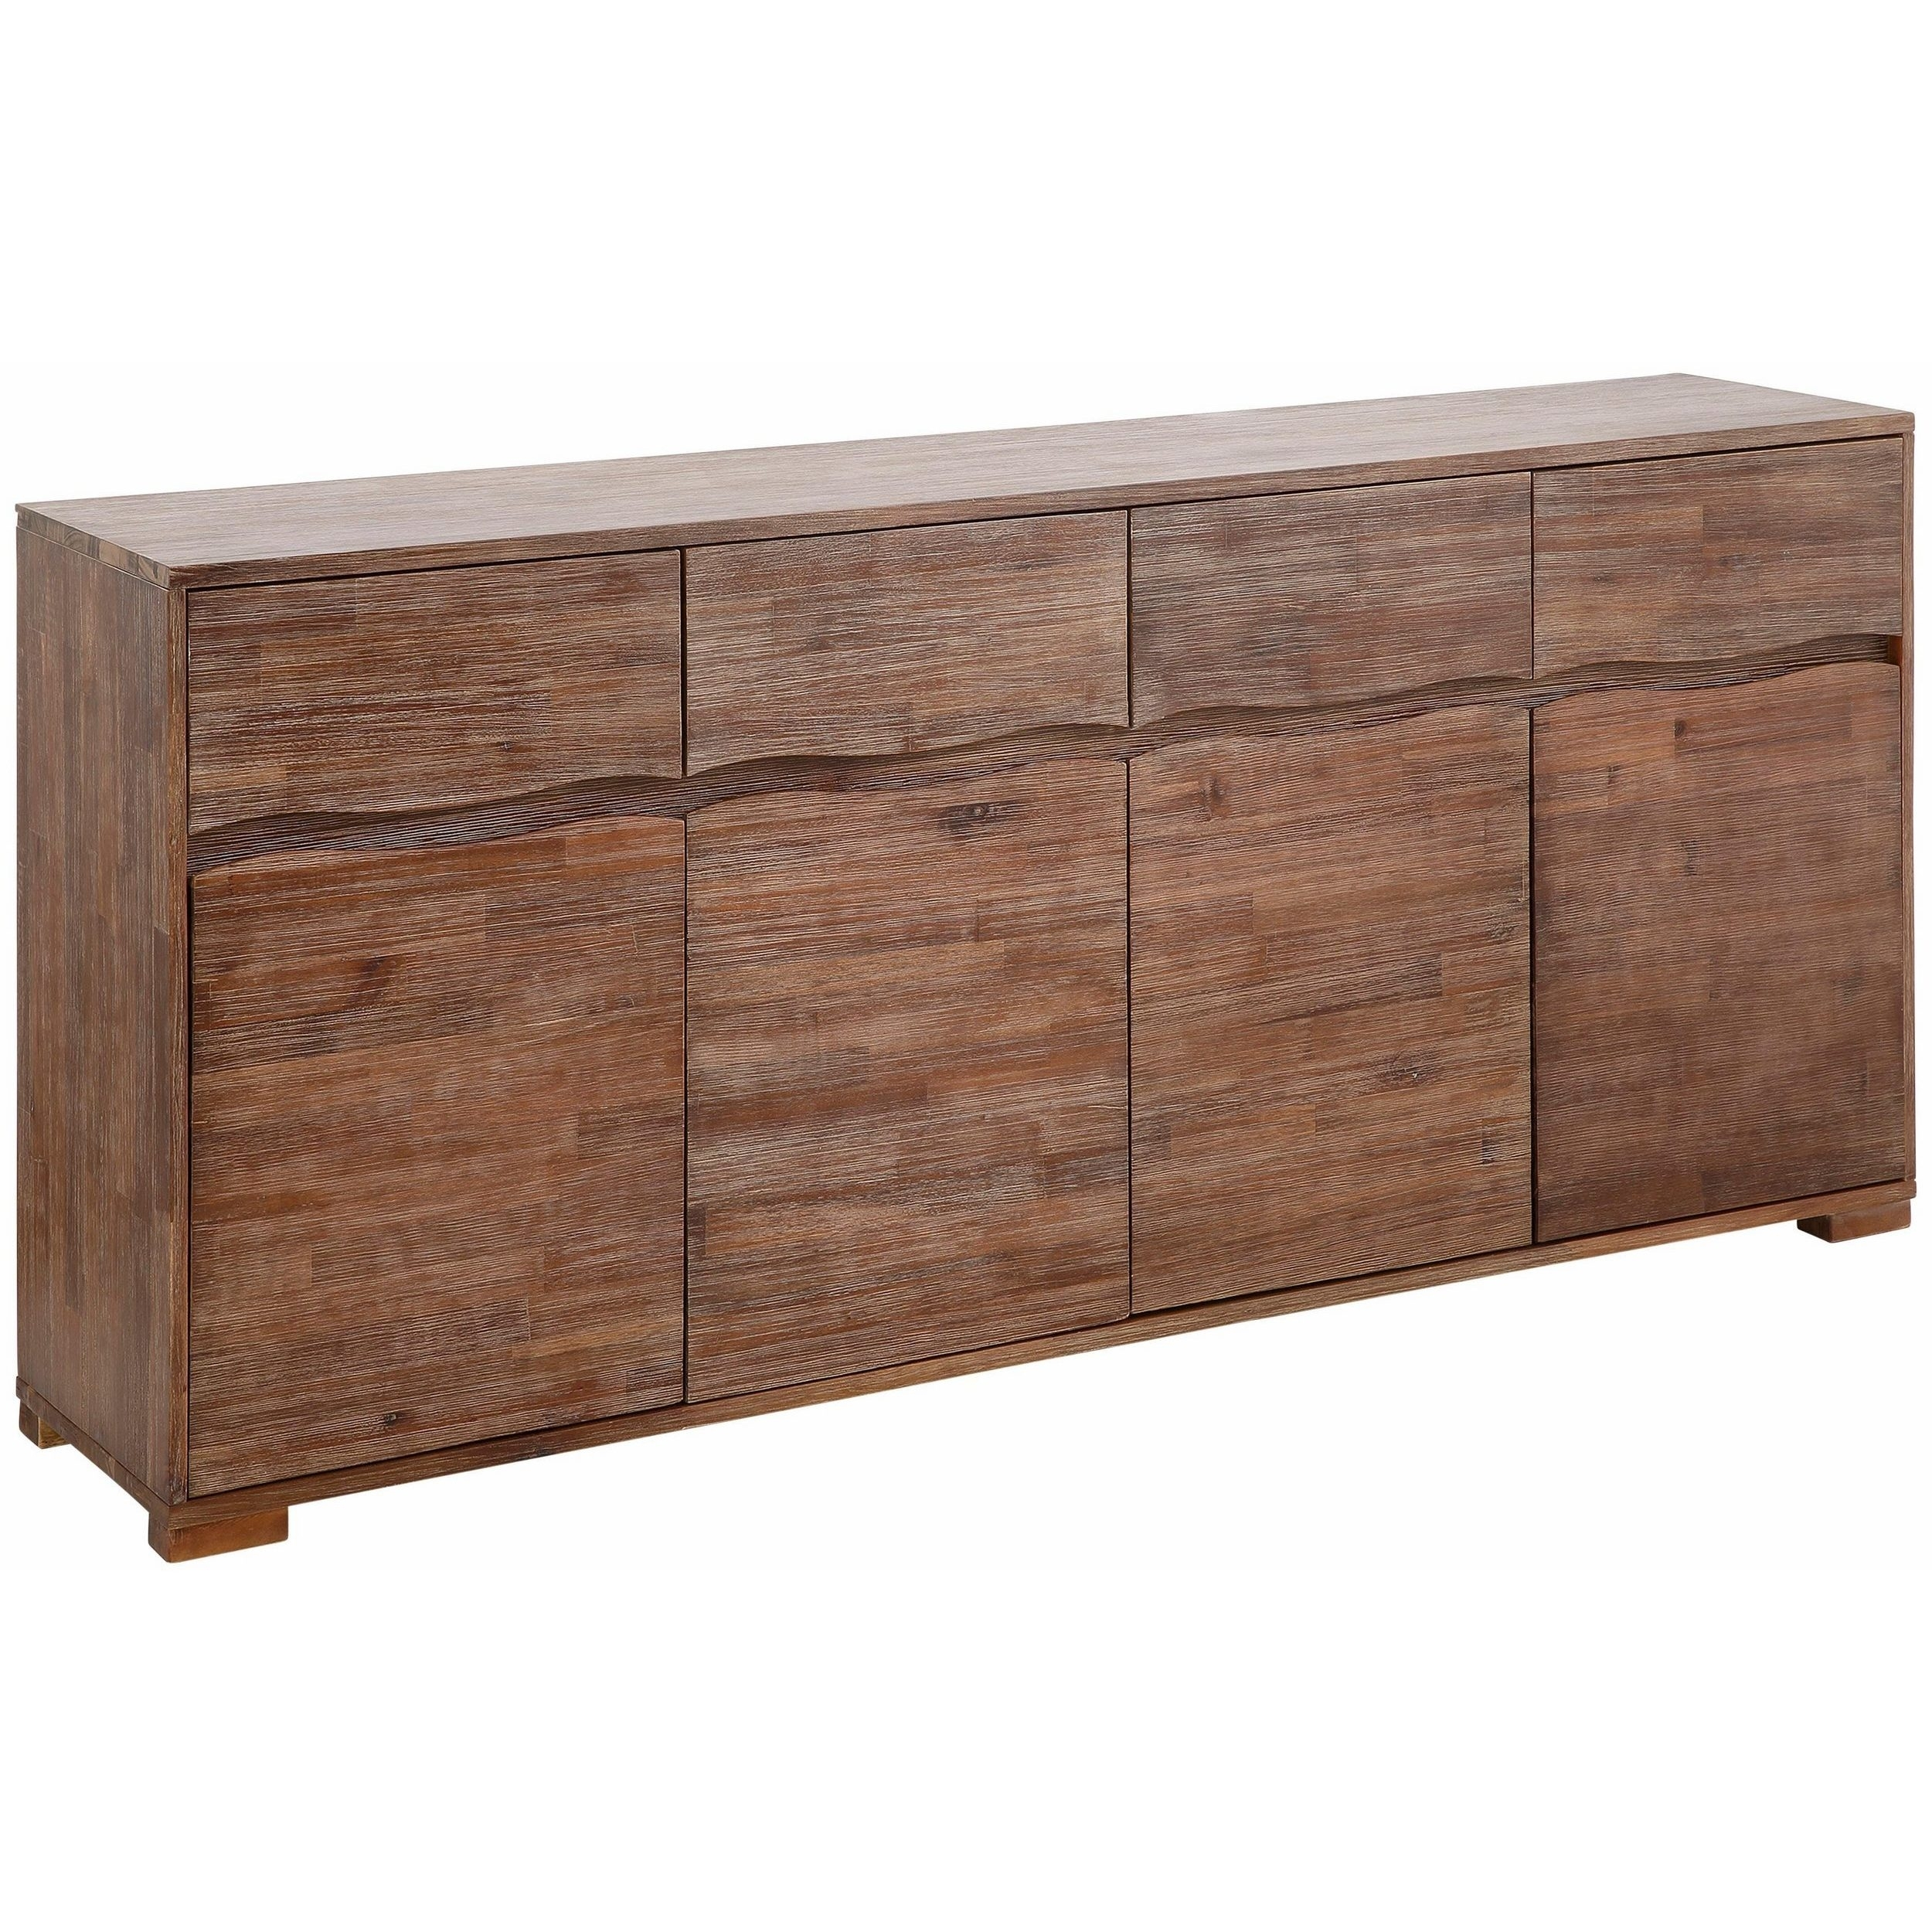 Shop Surf Sideboard With 4 Doors And 4 Drawers, Acacia Wood – On With Regard To Most Popular Acacia Wood 4 Door Sideboards (#15 of 20)